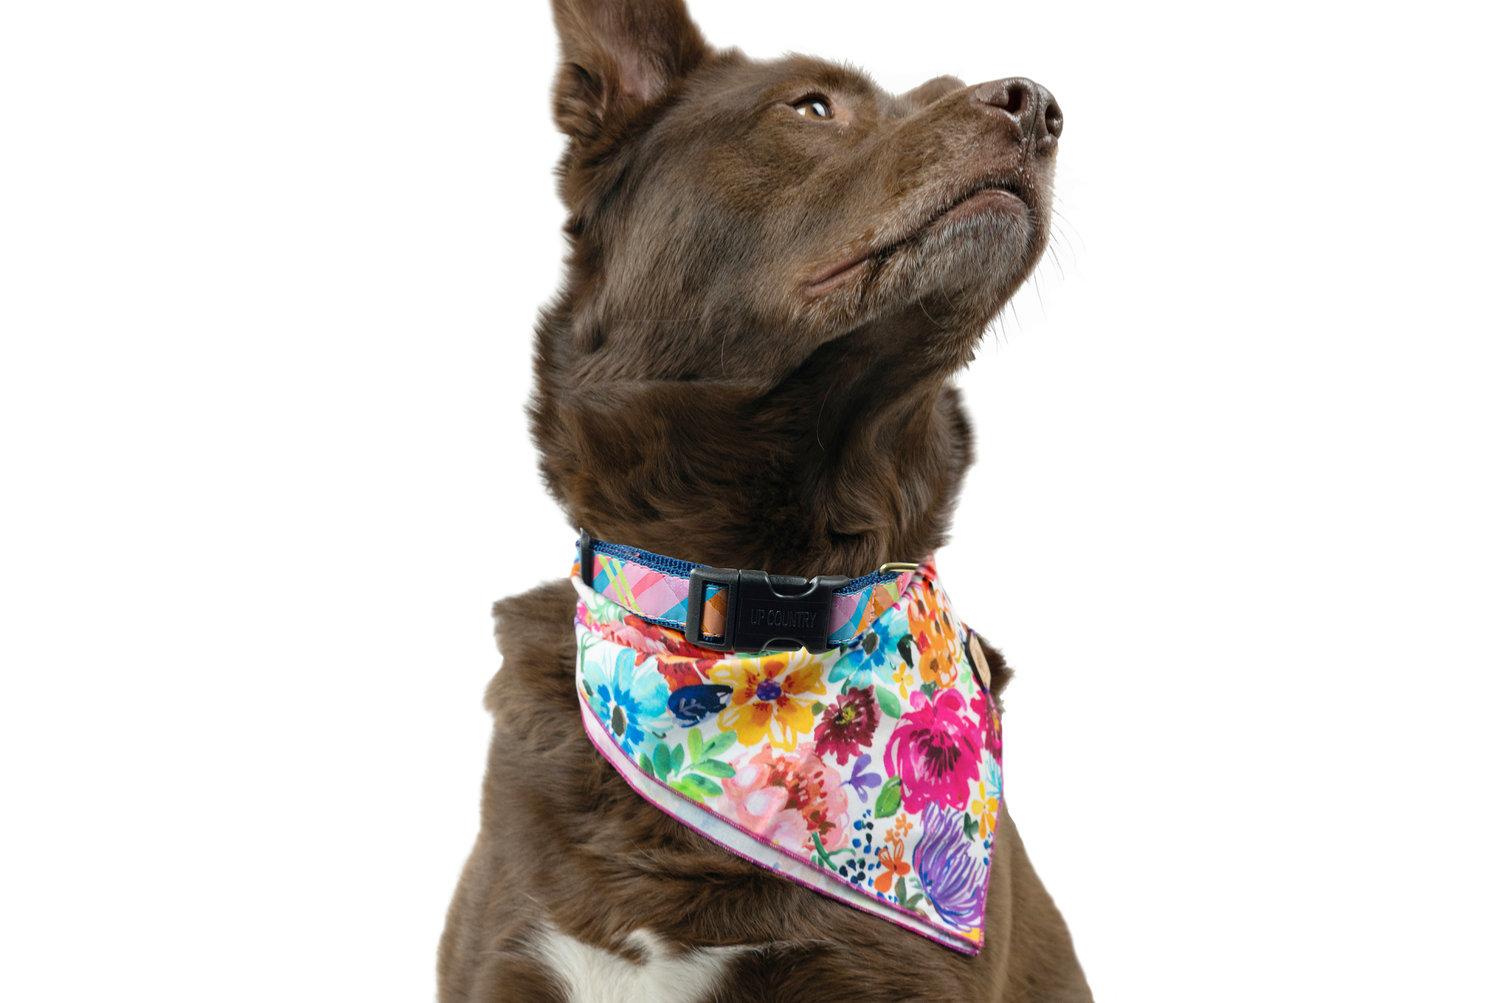 Cotton Dog Bandana, Lush Floral: $20 Etsy: WolfeAndHoundCompany, @wolfeandhoundcompany  |  Pink Madras Dog Collar: $23, UpCountryInc.com, @upcountryinc